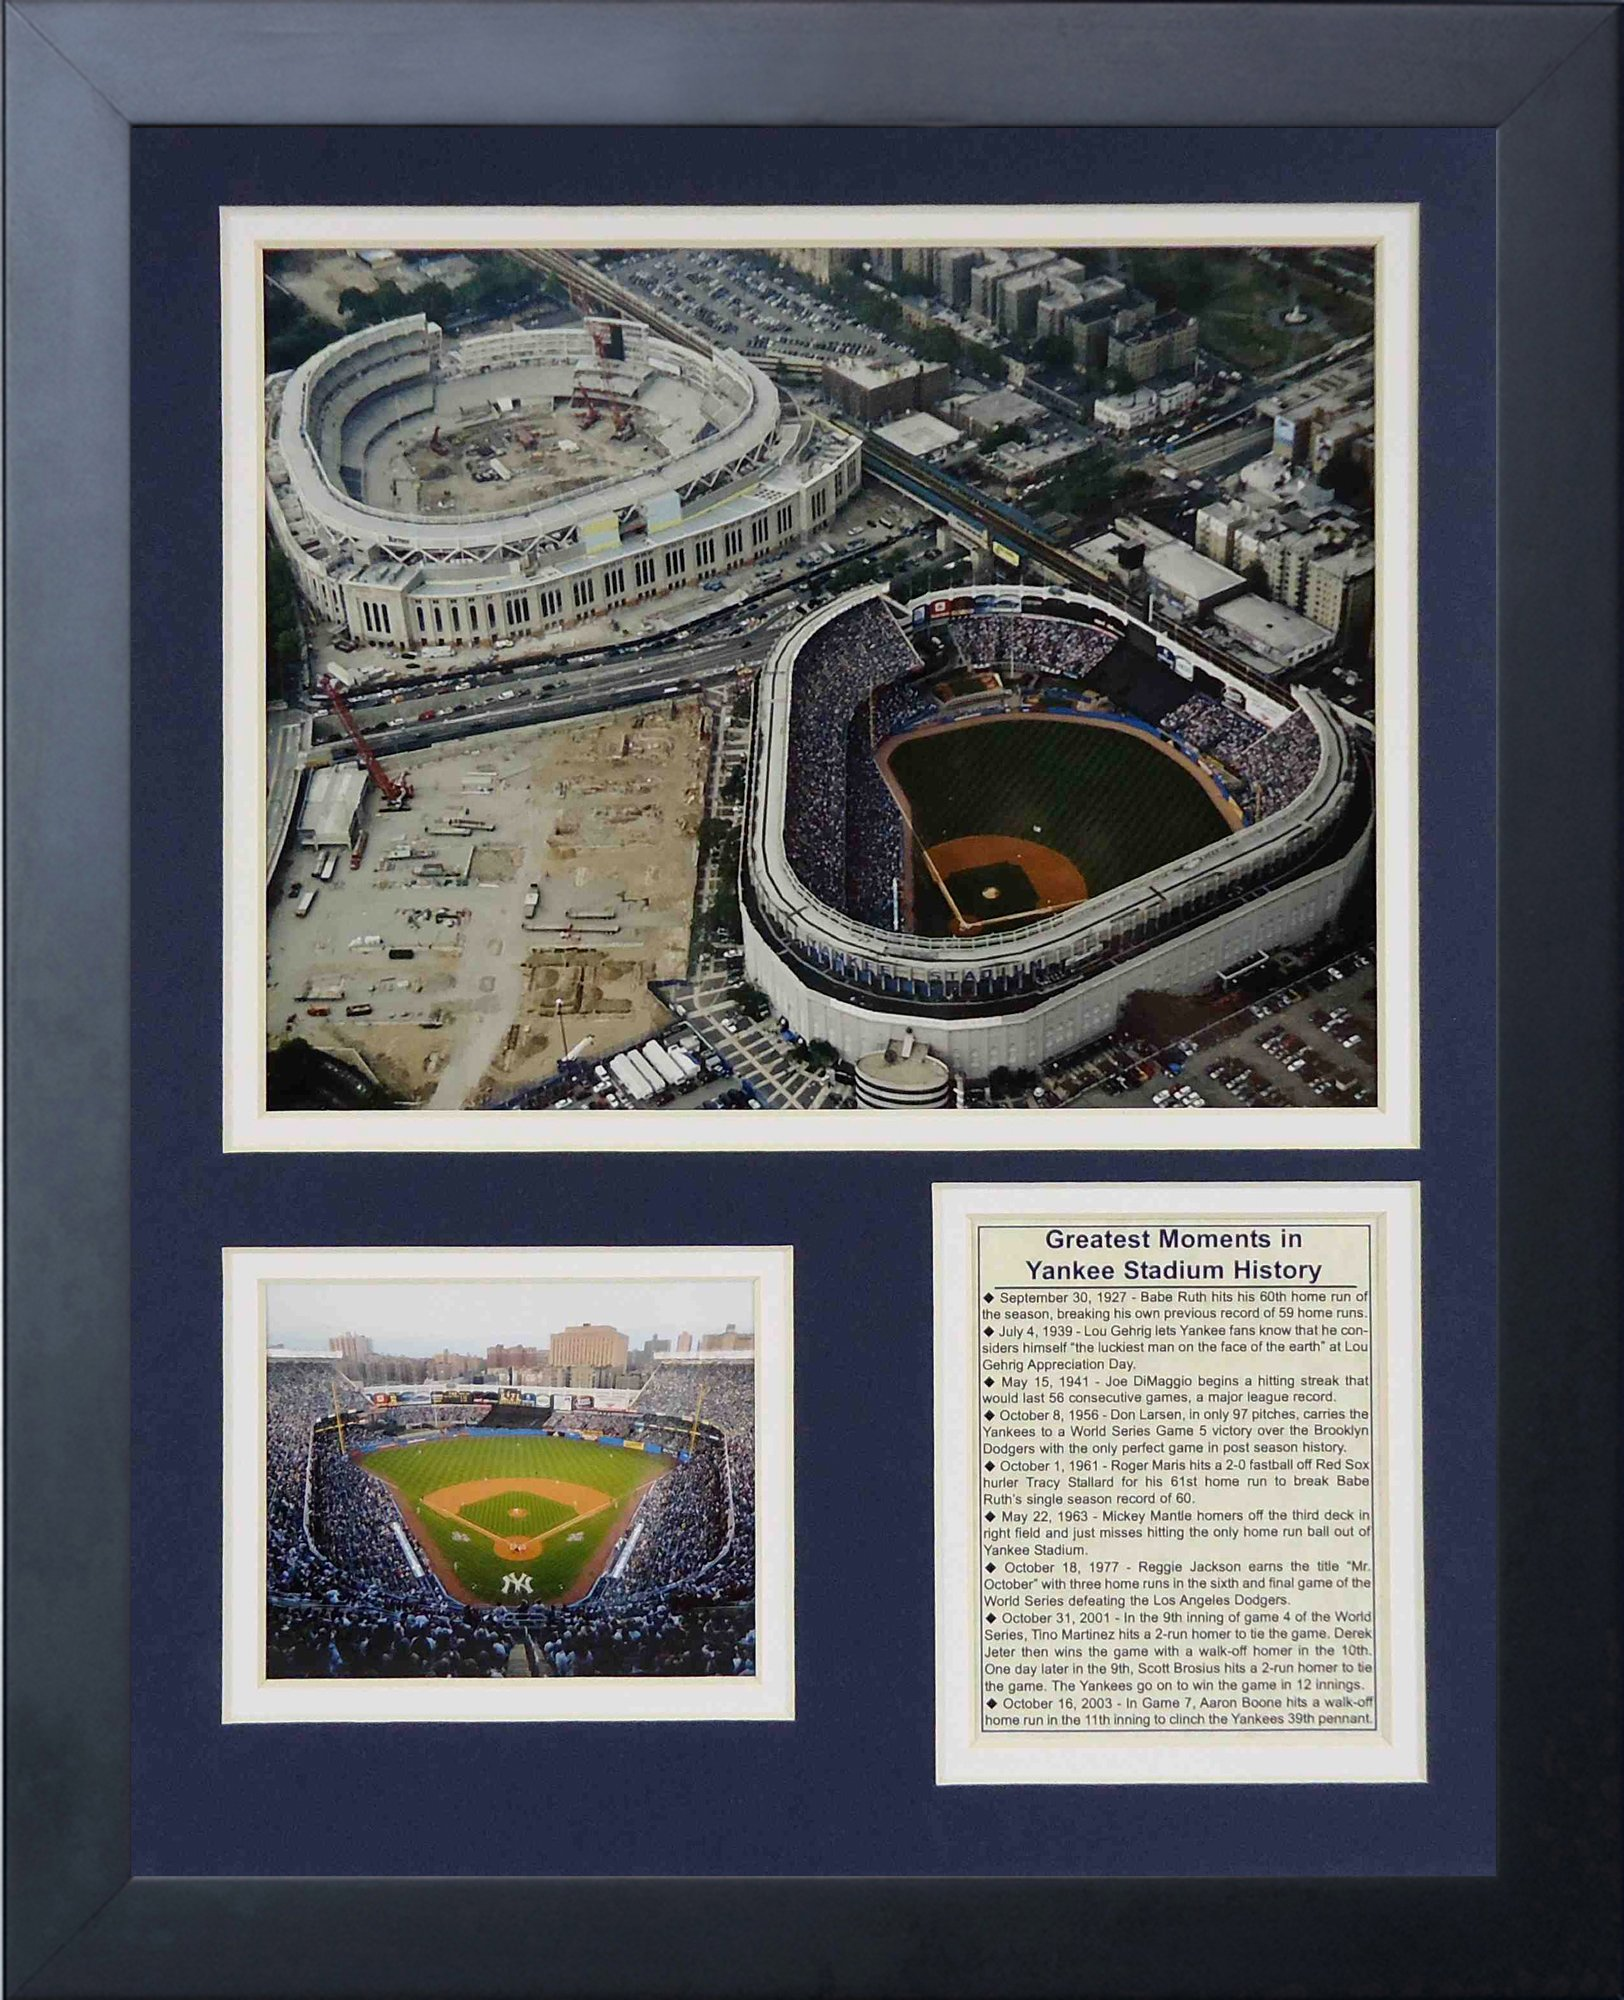 Legends Never Die Yankee Stadium Old and New Construction Framed Photo Collage, 11x14-Inch by Legends Never Die